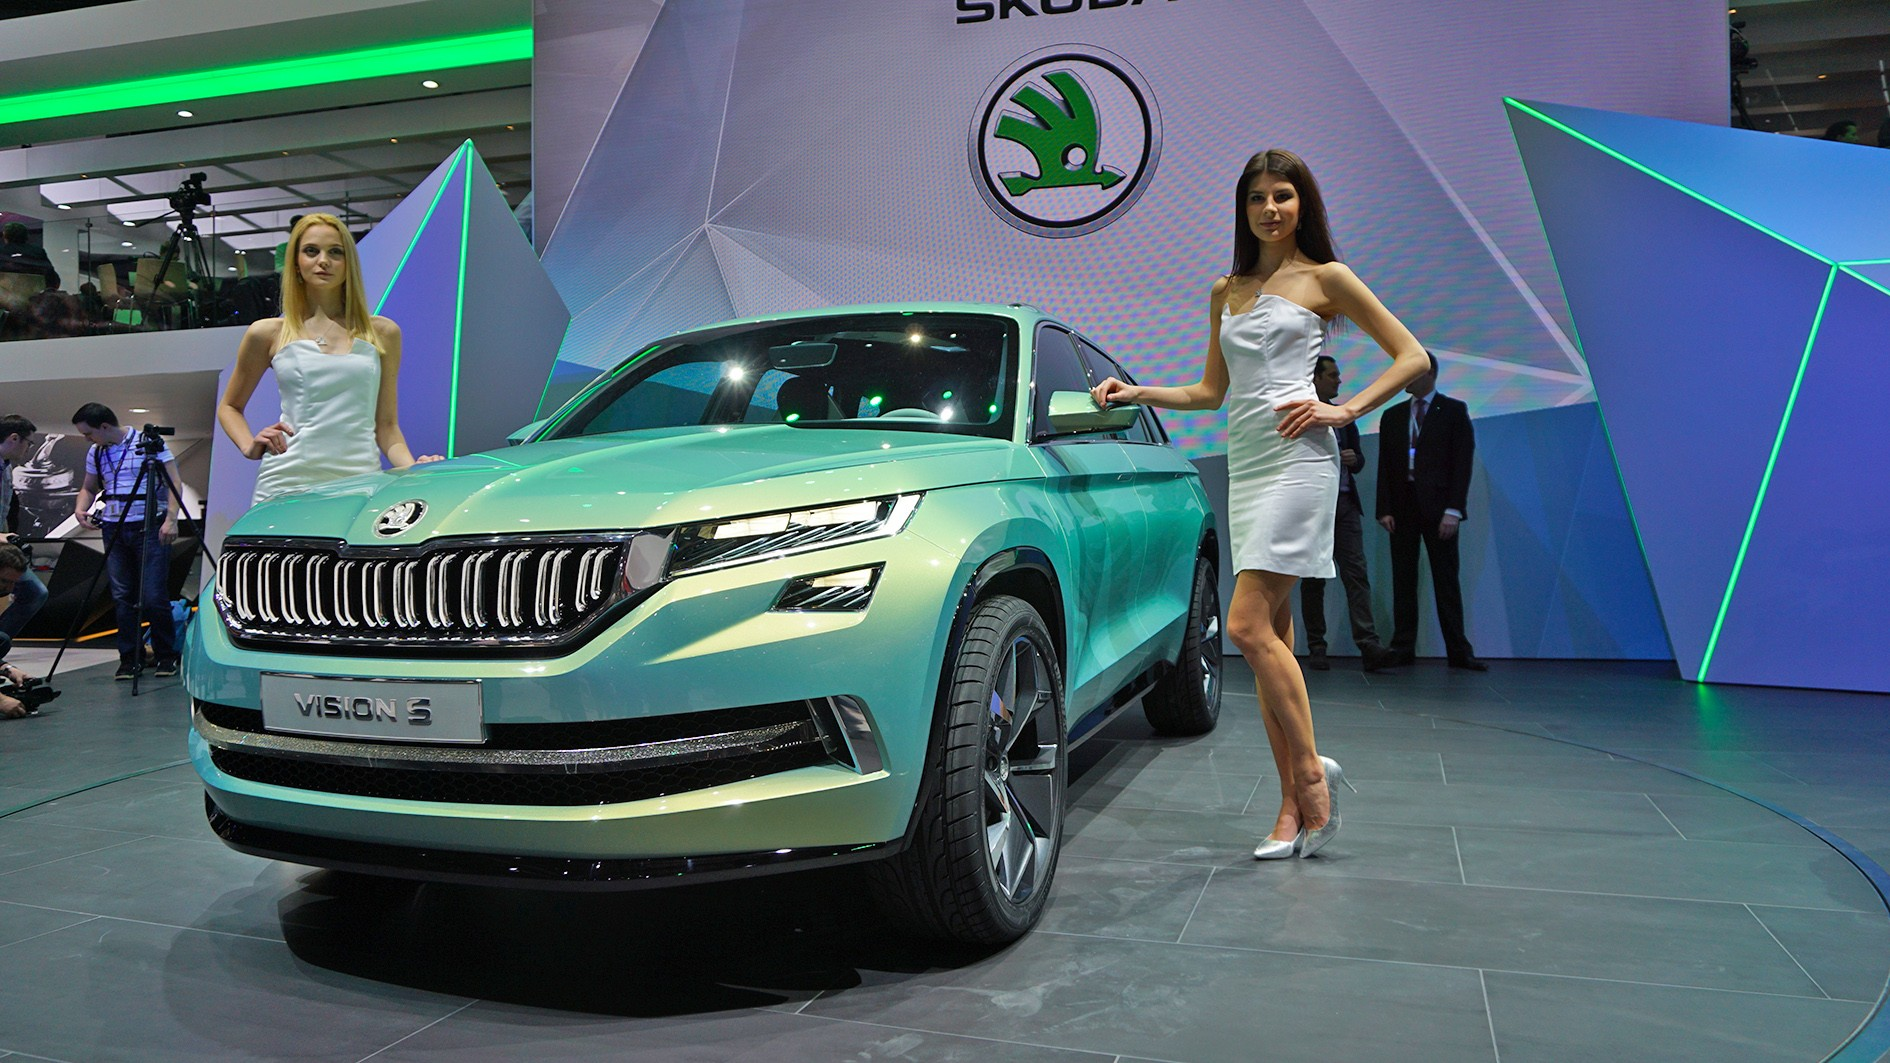 Skoda VisionS front view